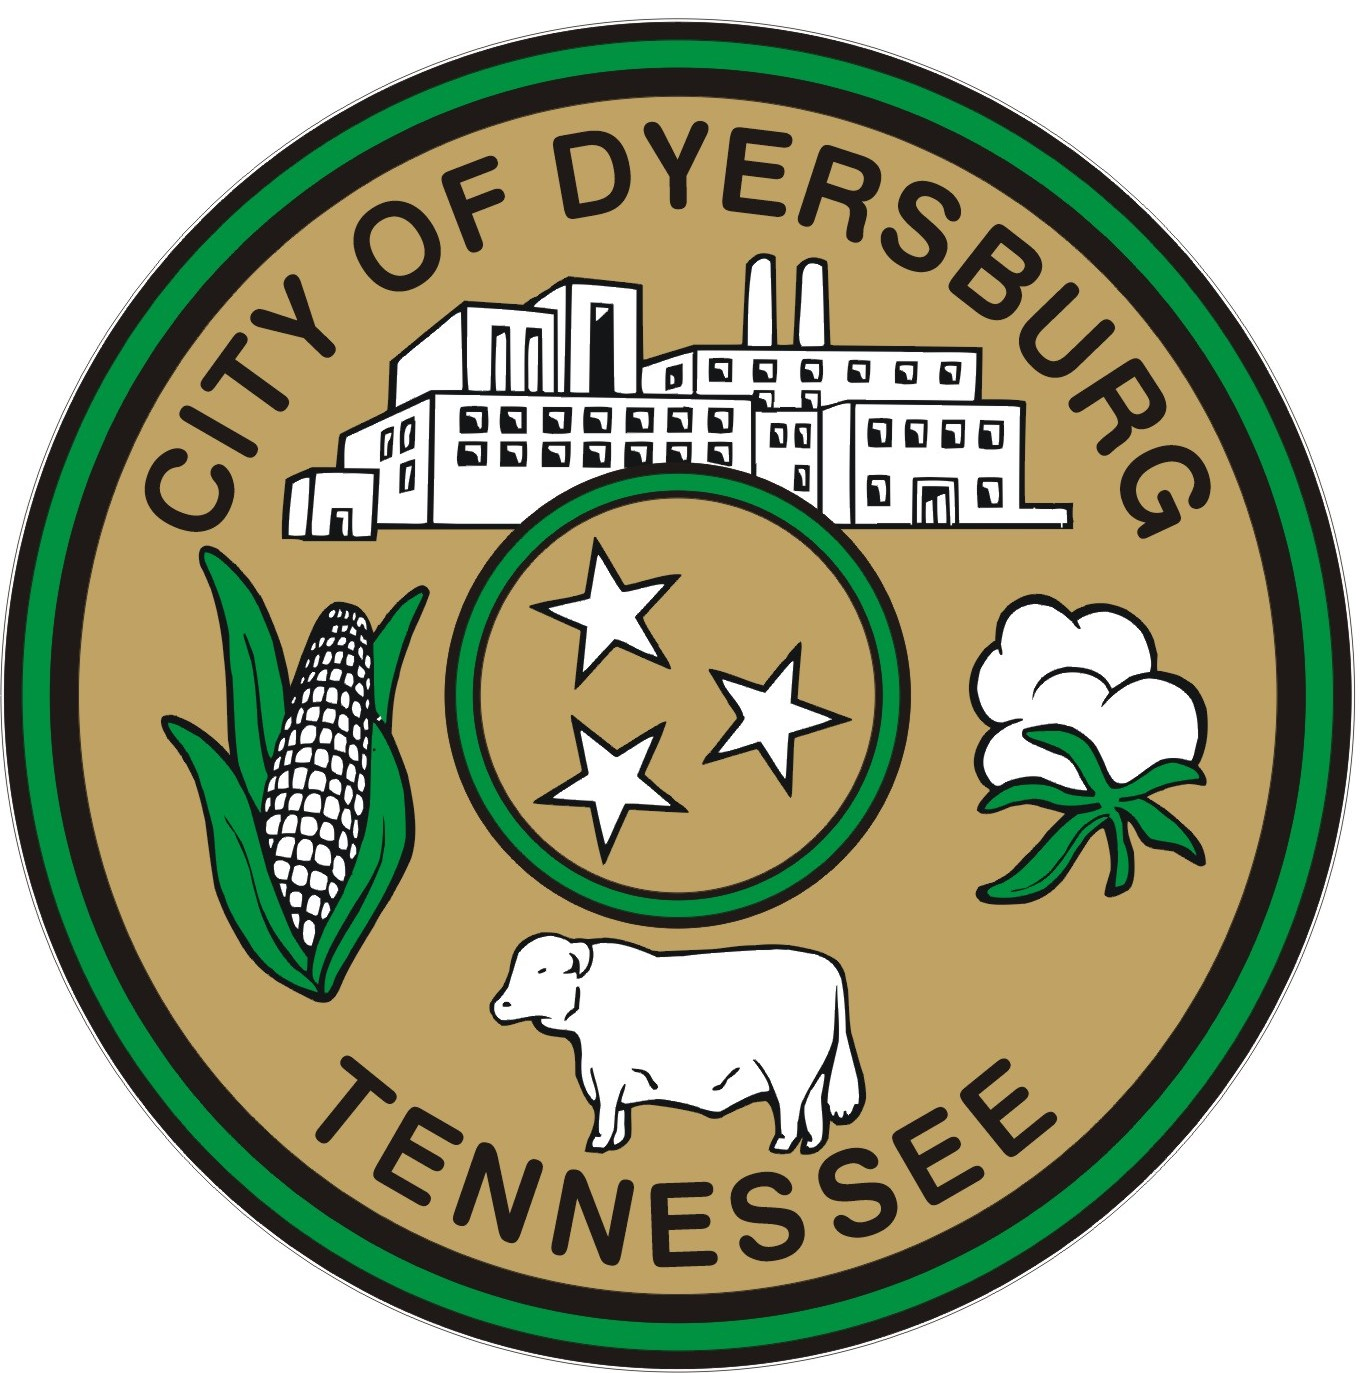 Utilities Mapping | city of dyersburg